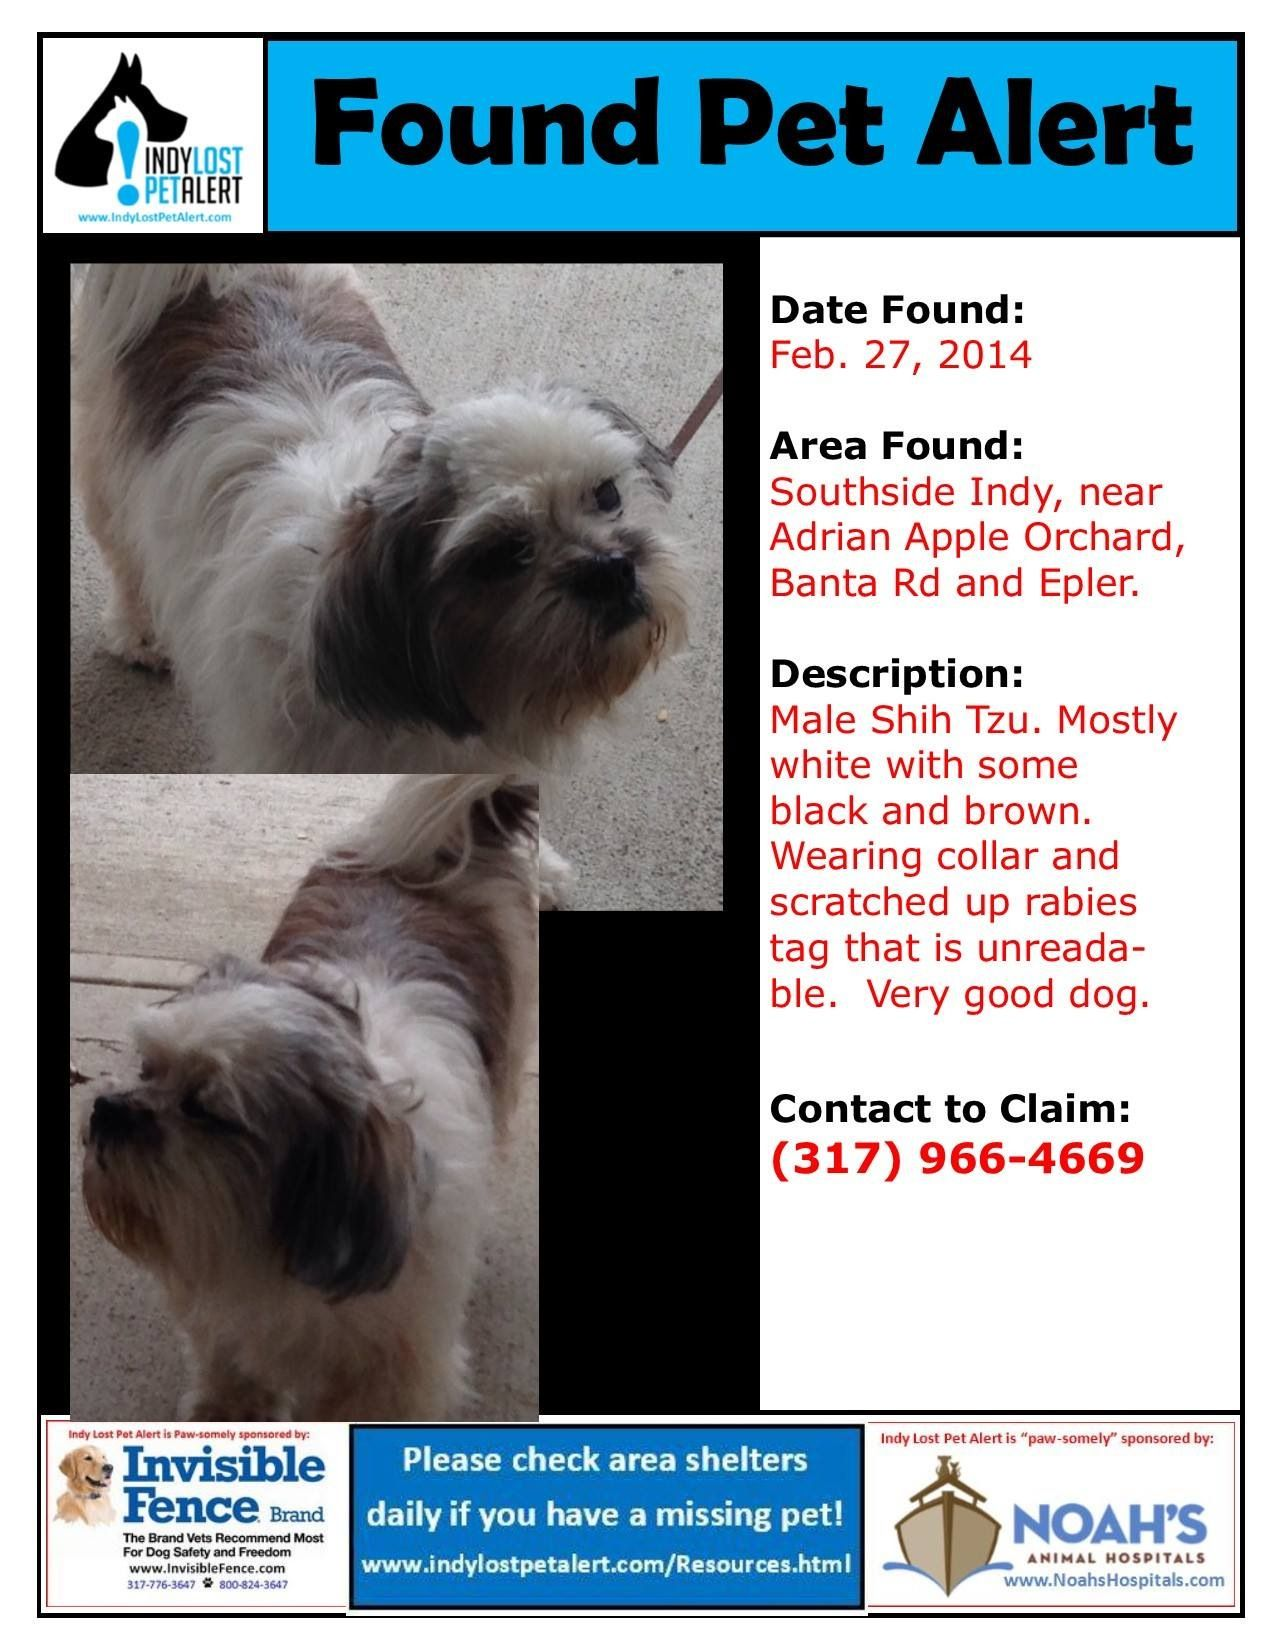 Founddog 2 27 14 Indianapolis In Male Shihtzu White Black Brown Collar Banta Rd Epler 317 966 4669 Losing A Dog Find Pets Black And Brown